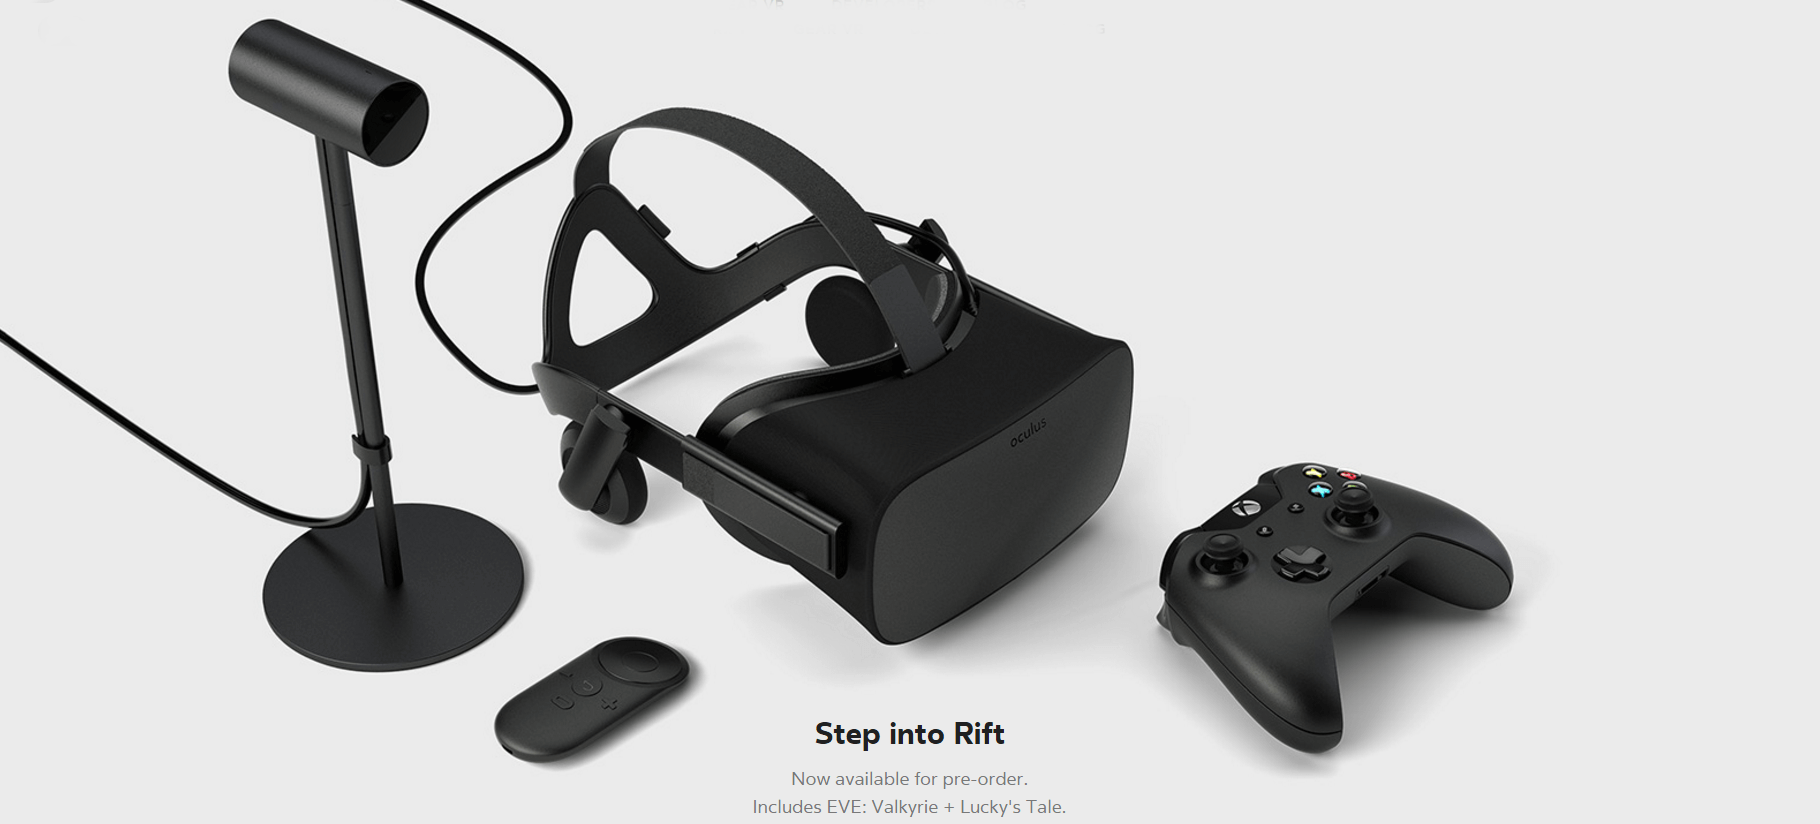 Oculus Rift Availble for Pre-order